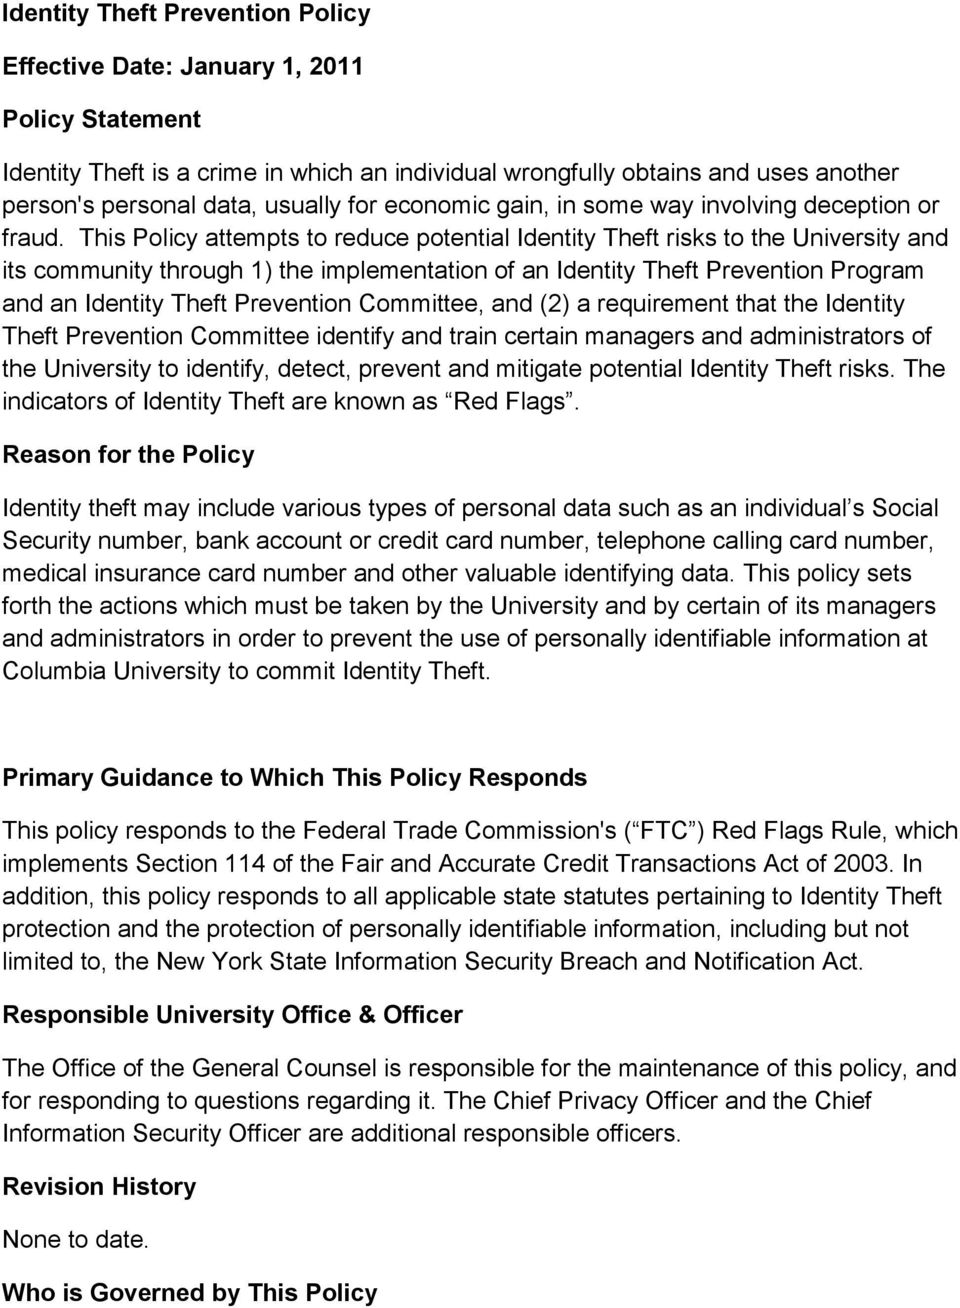 This Policy attempts to reduce potential Identity Theft risks to the University and its community through 1) the implementation of an Identity Theft Prevention Program and an Identity Theft